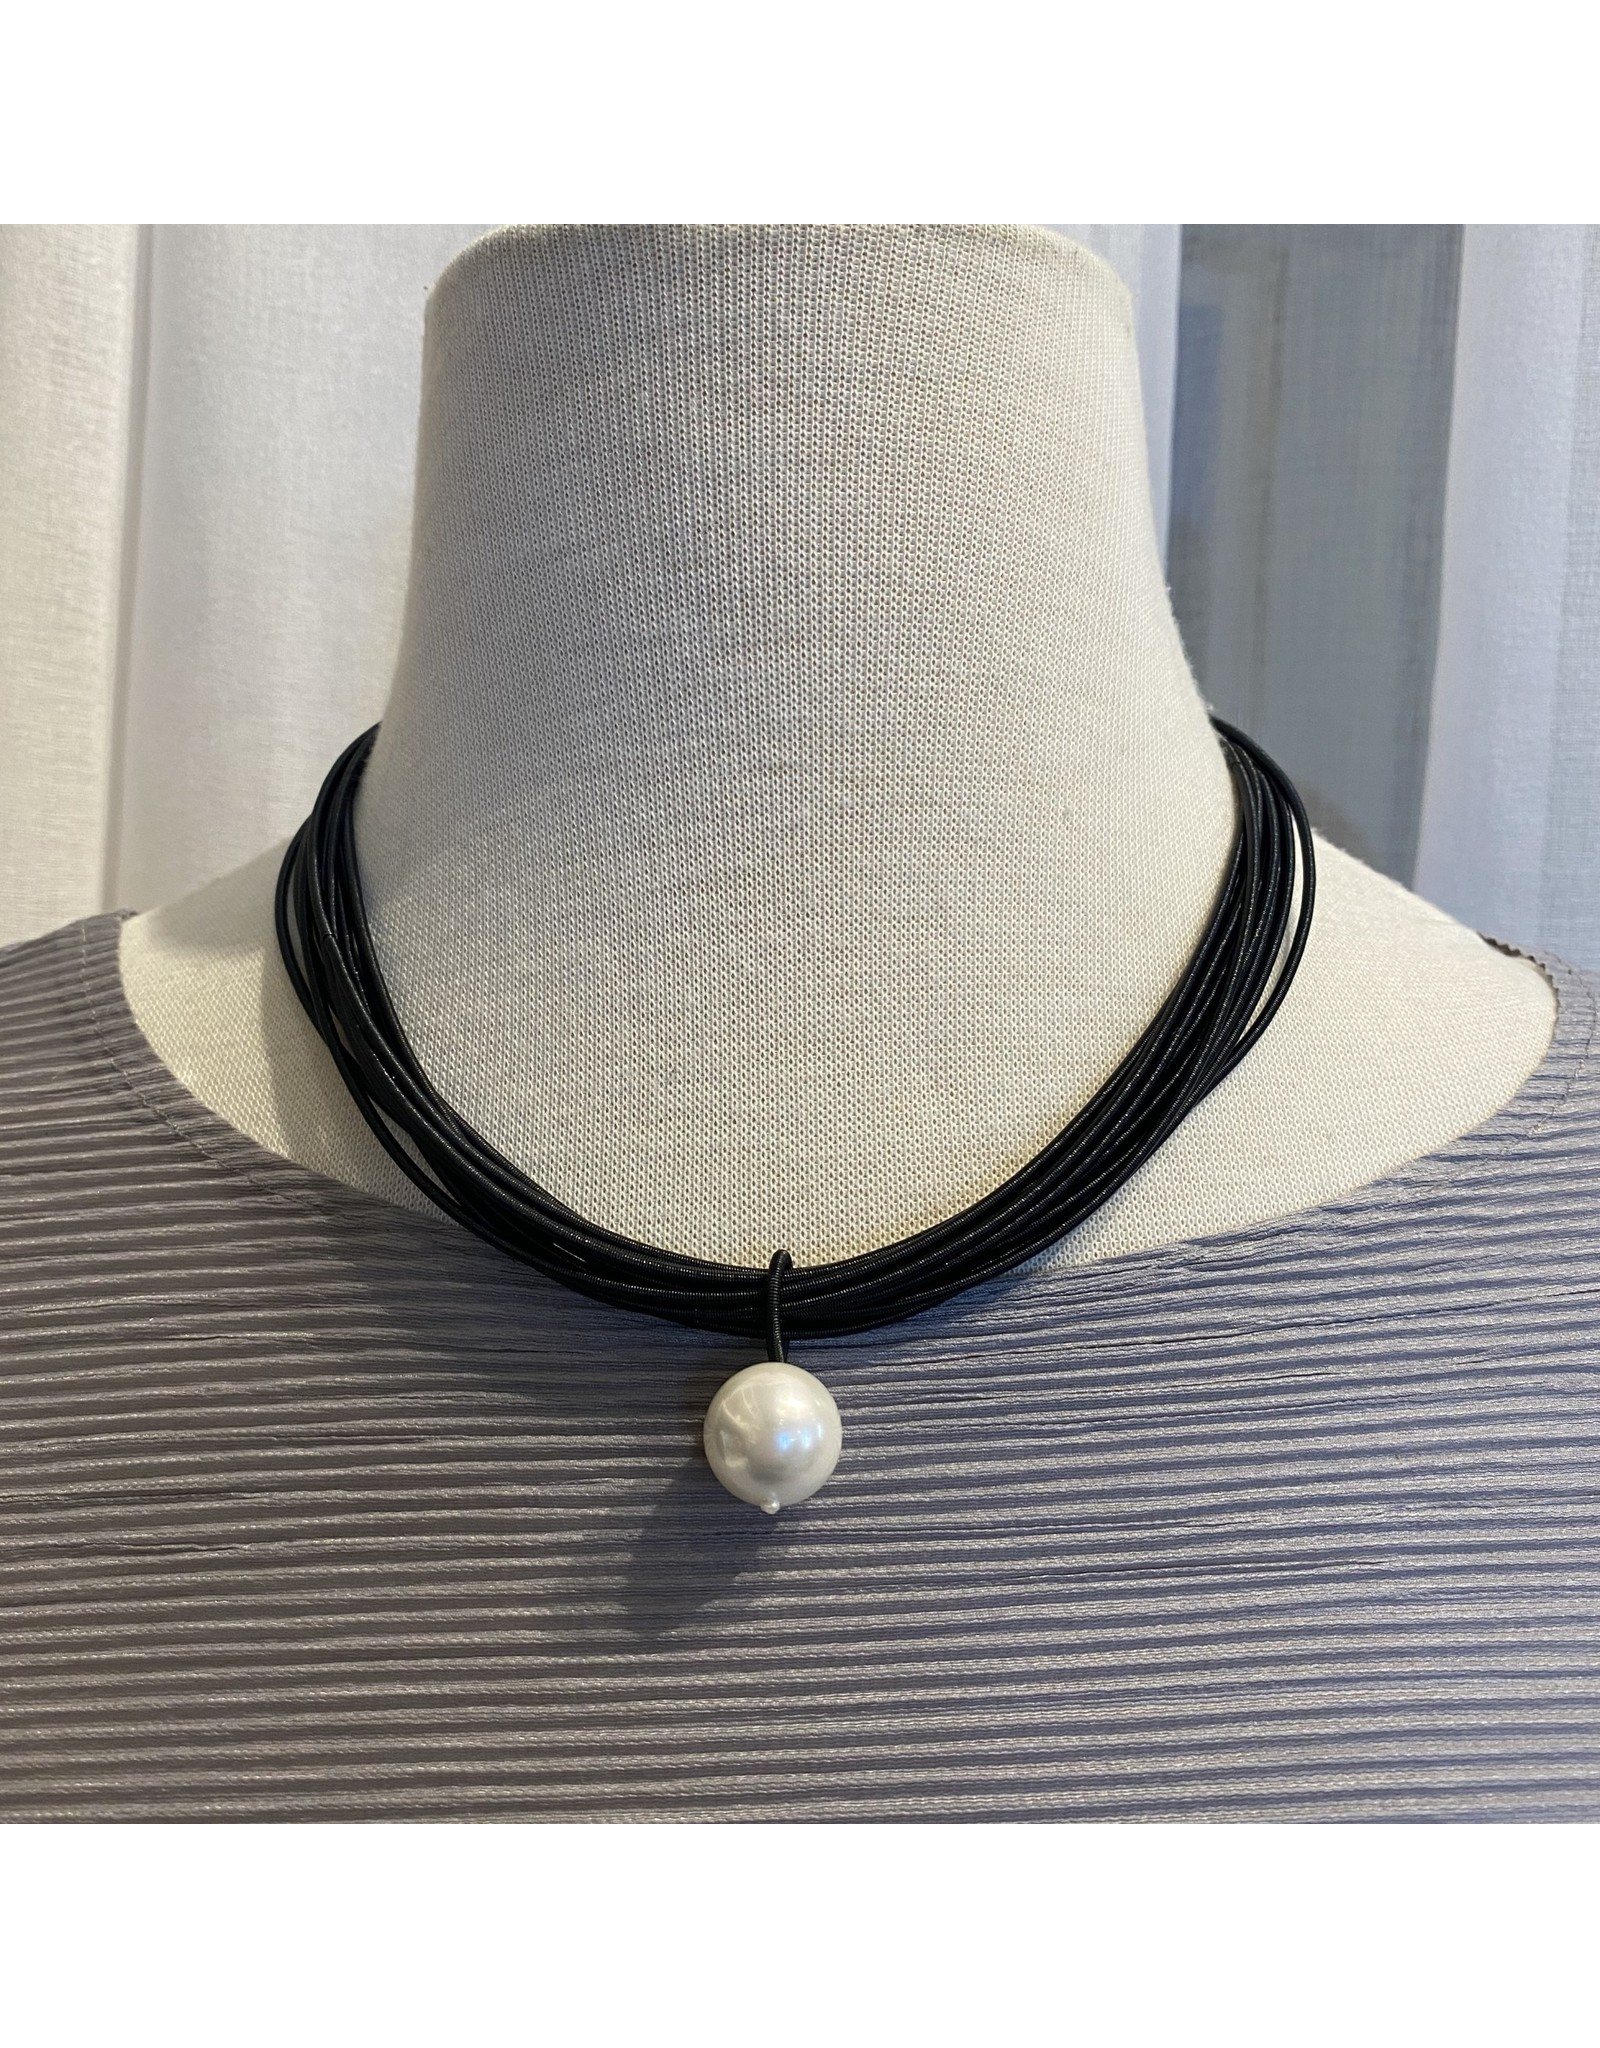 Sea Lily Single Pearl Drop With Black